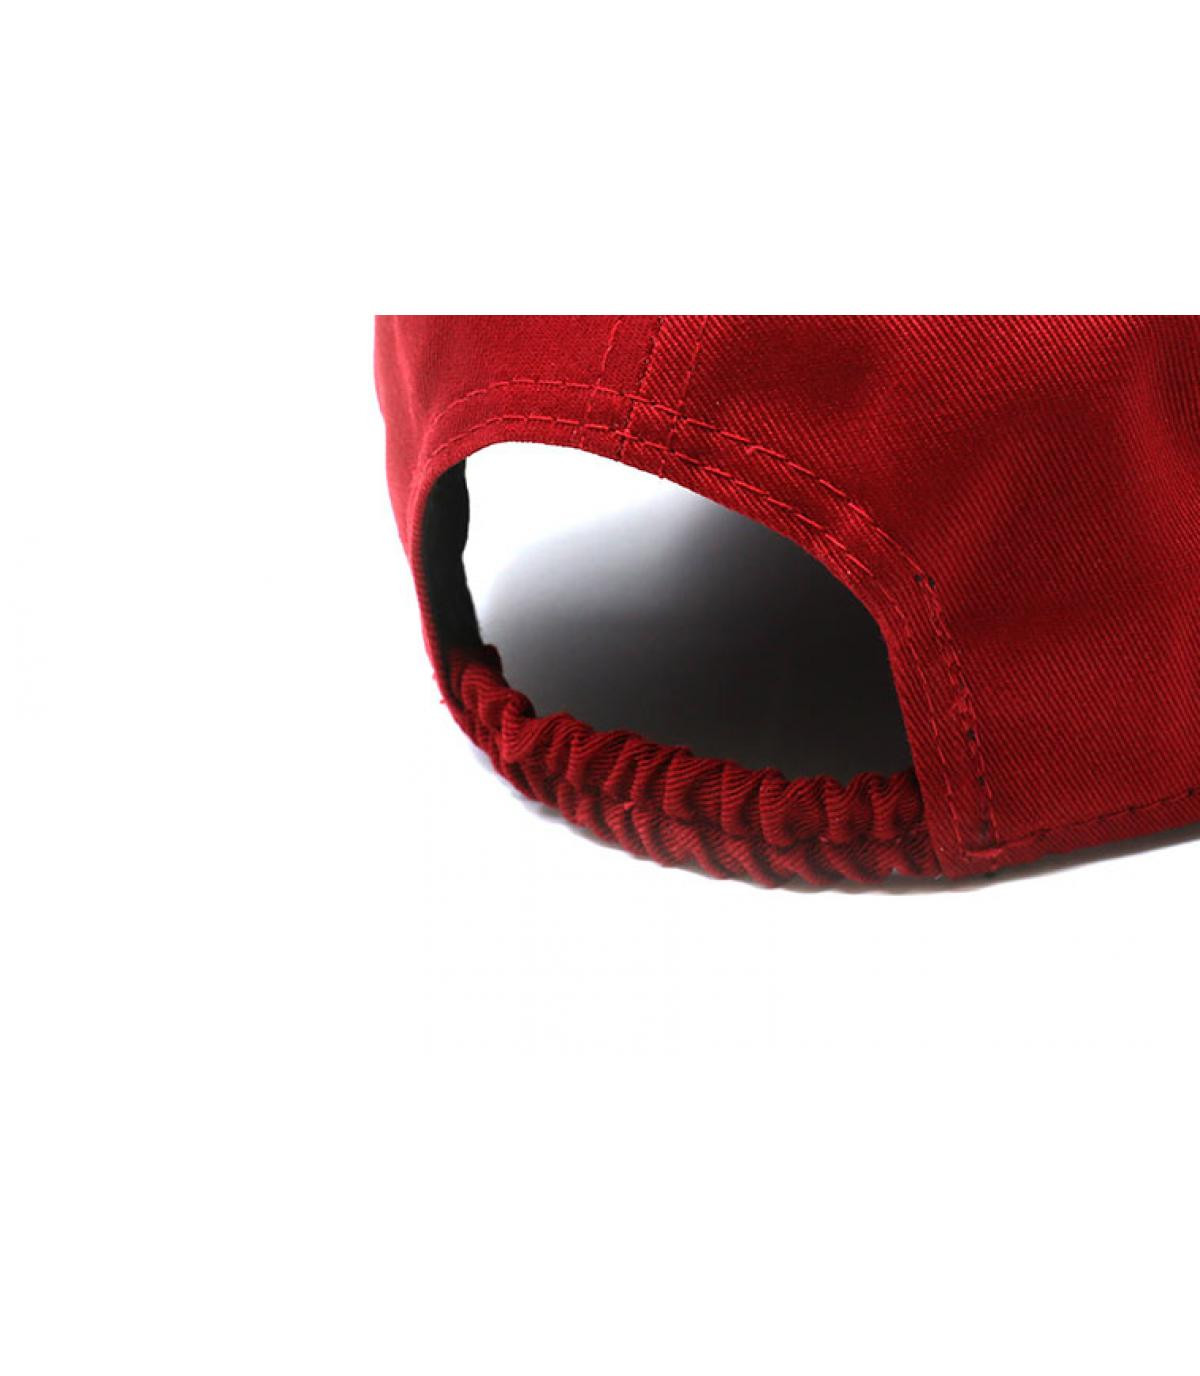 Détails Casquette Baby League Ess NY 9Forty hot red black - image 5